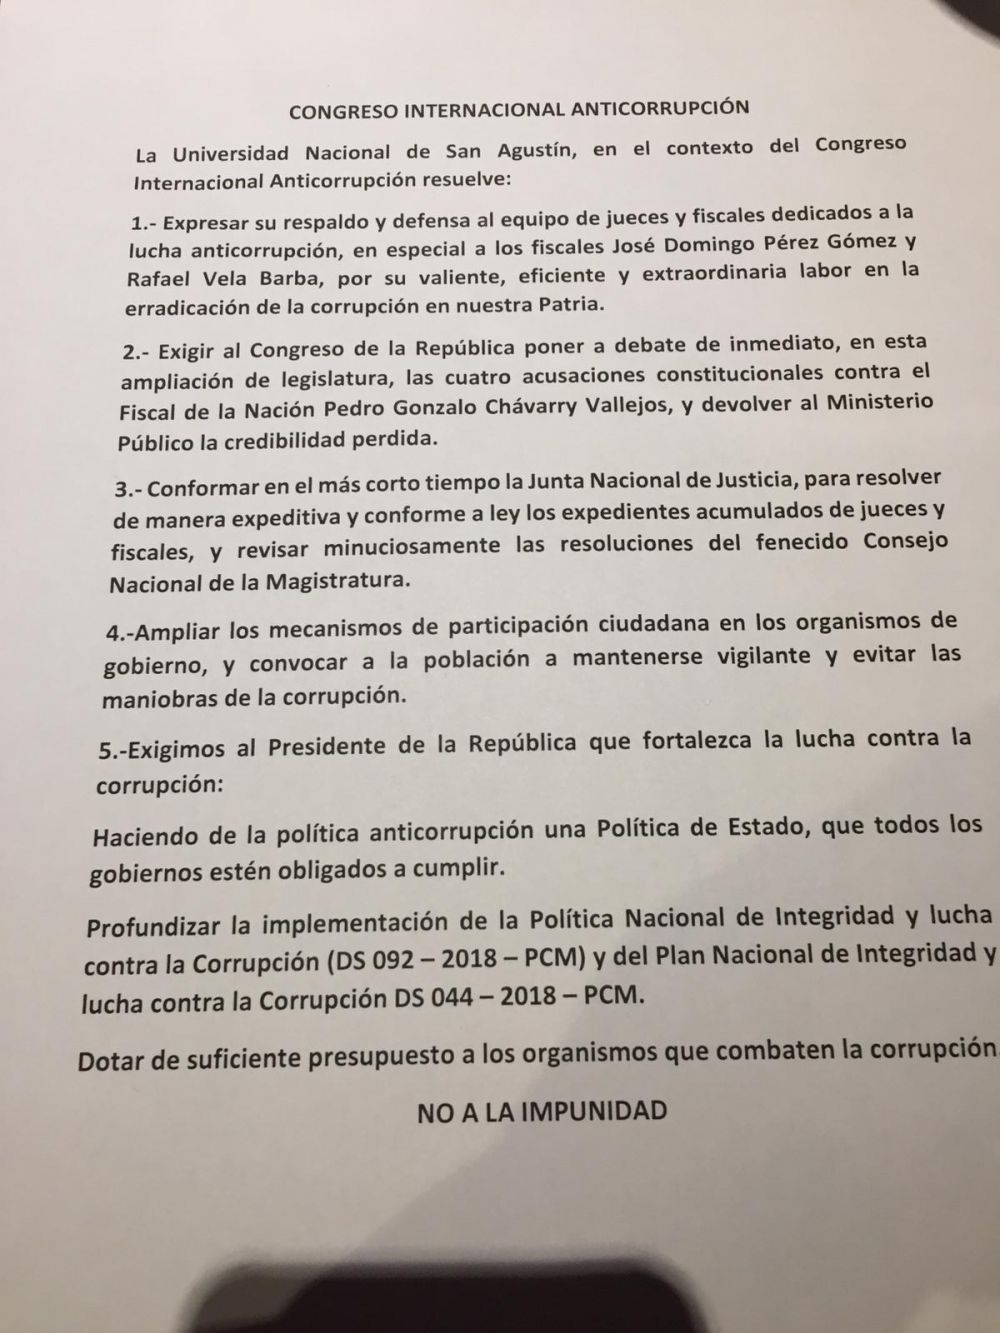 Congreso Internacional Anticorrupción